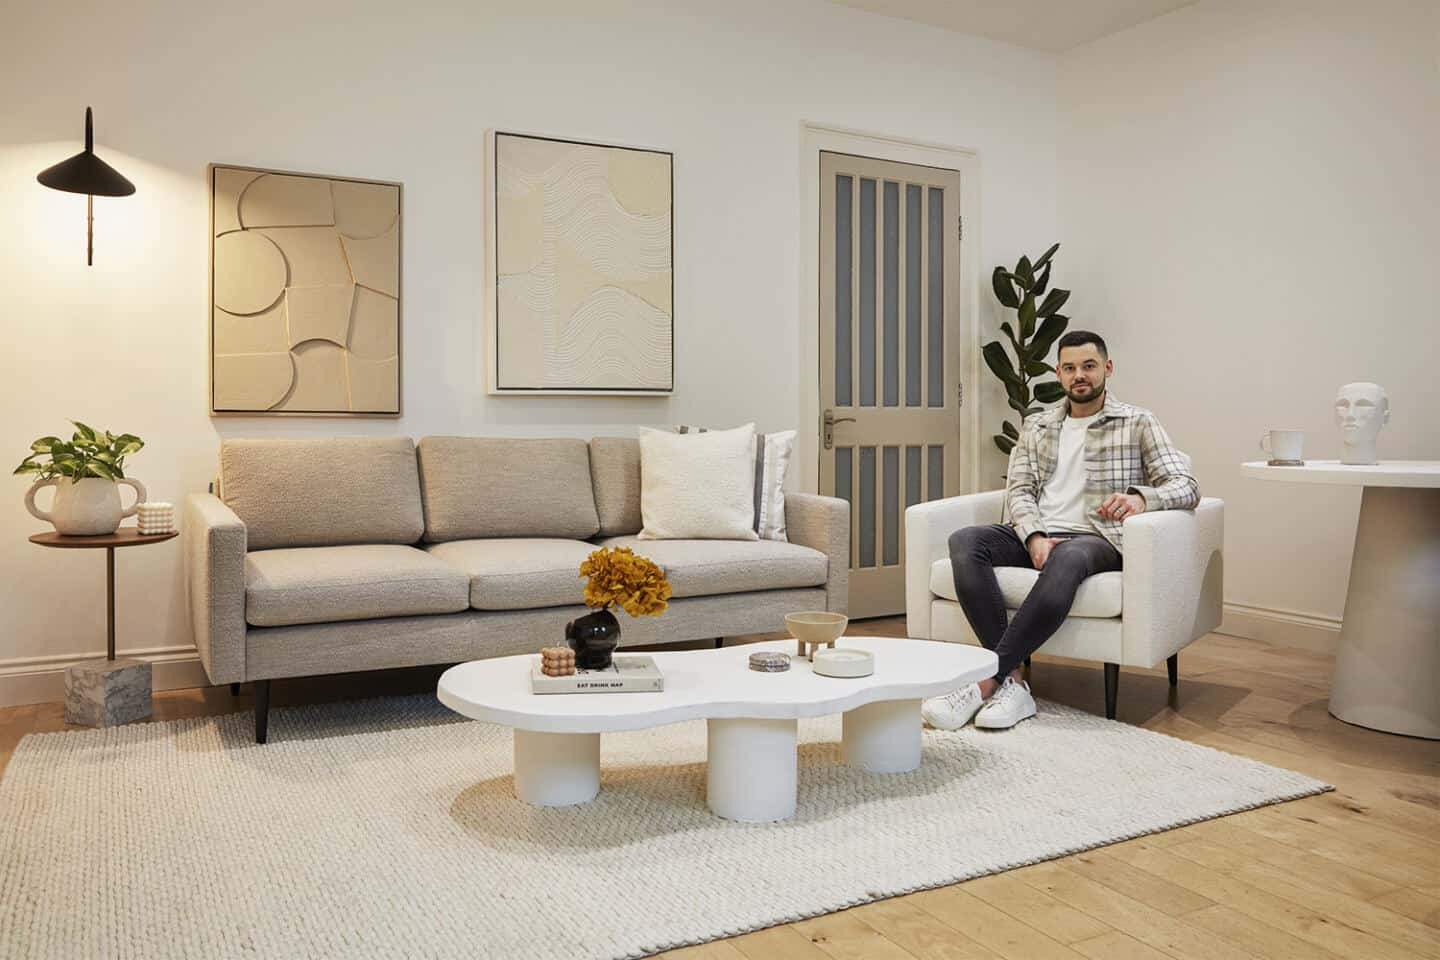 Interior designer Luke Arthur Wells sat on his new bouclé sofa collection designed in collaboration with Swyft Home